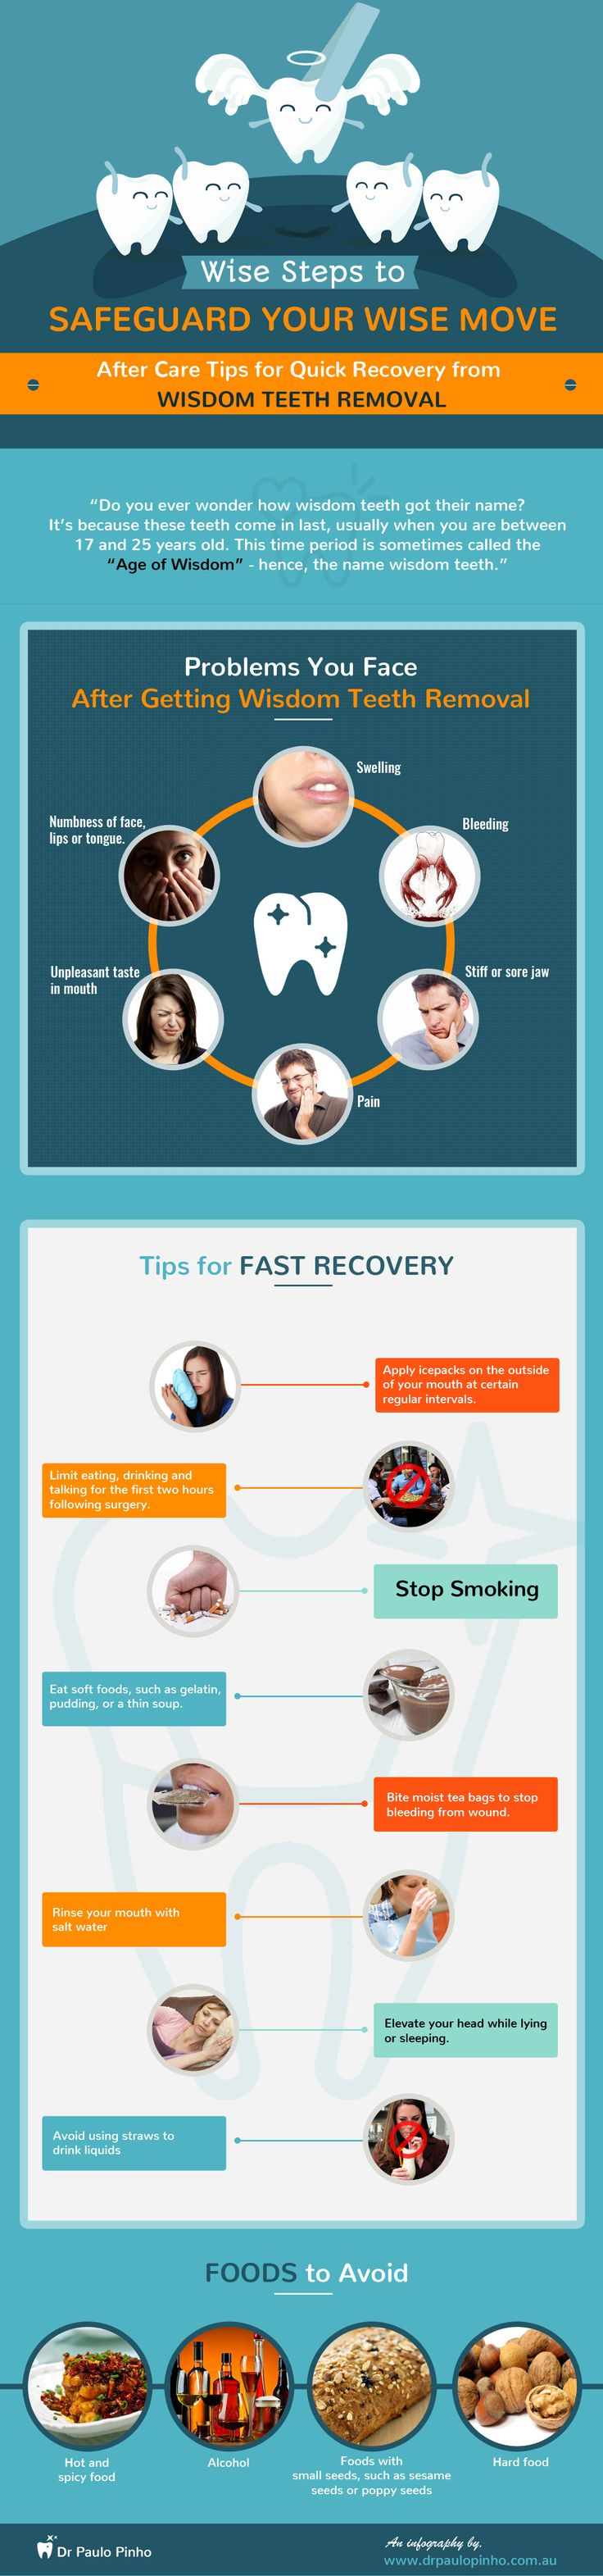 Aftercare Tips for Quick Recovery from Wisdom Teeth Removal  -  This infography brought to you by Dr Paulo Pinho provides post care tips to be followed for a speedy recovery from wisdom teeth removal procedure. Visit http://www.drpaulopinho.com.au/ for more information.